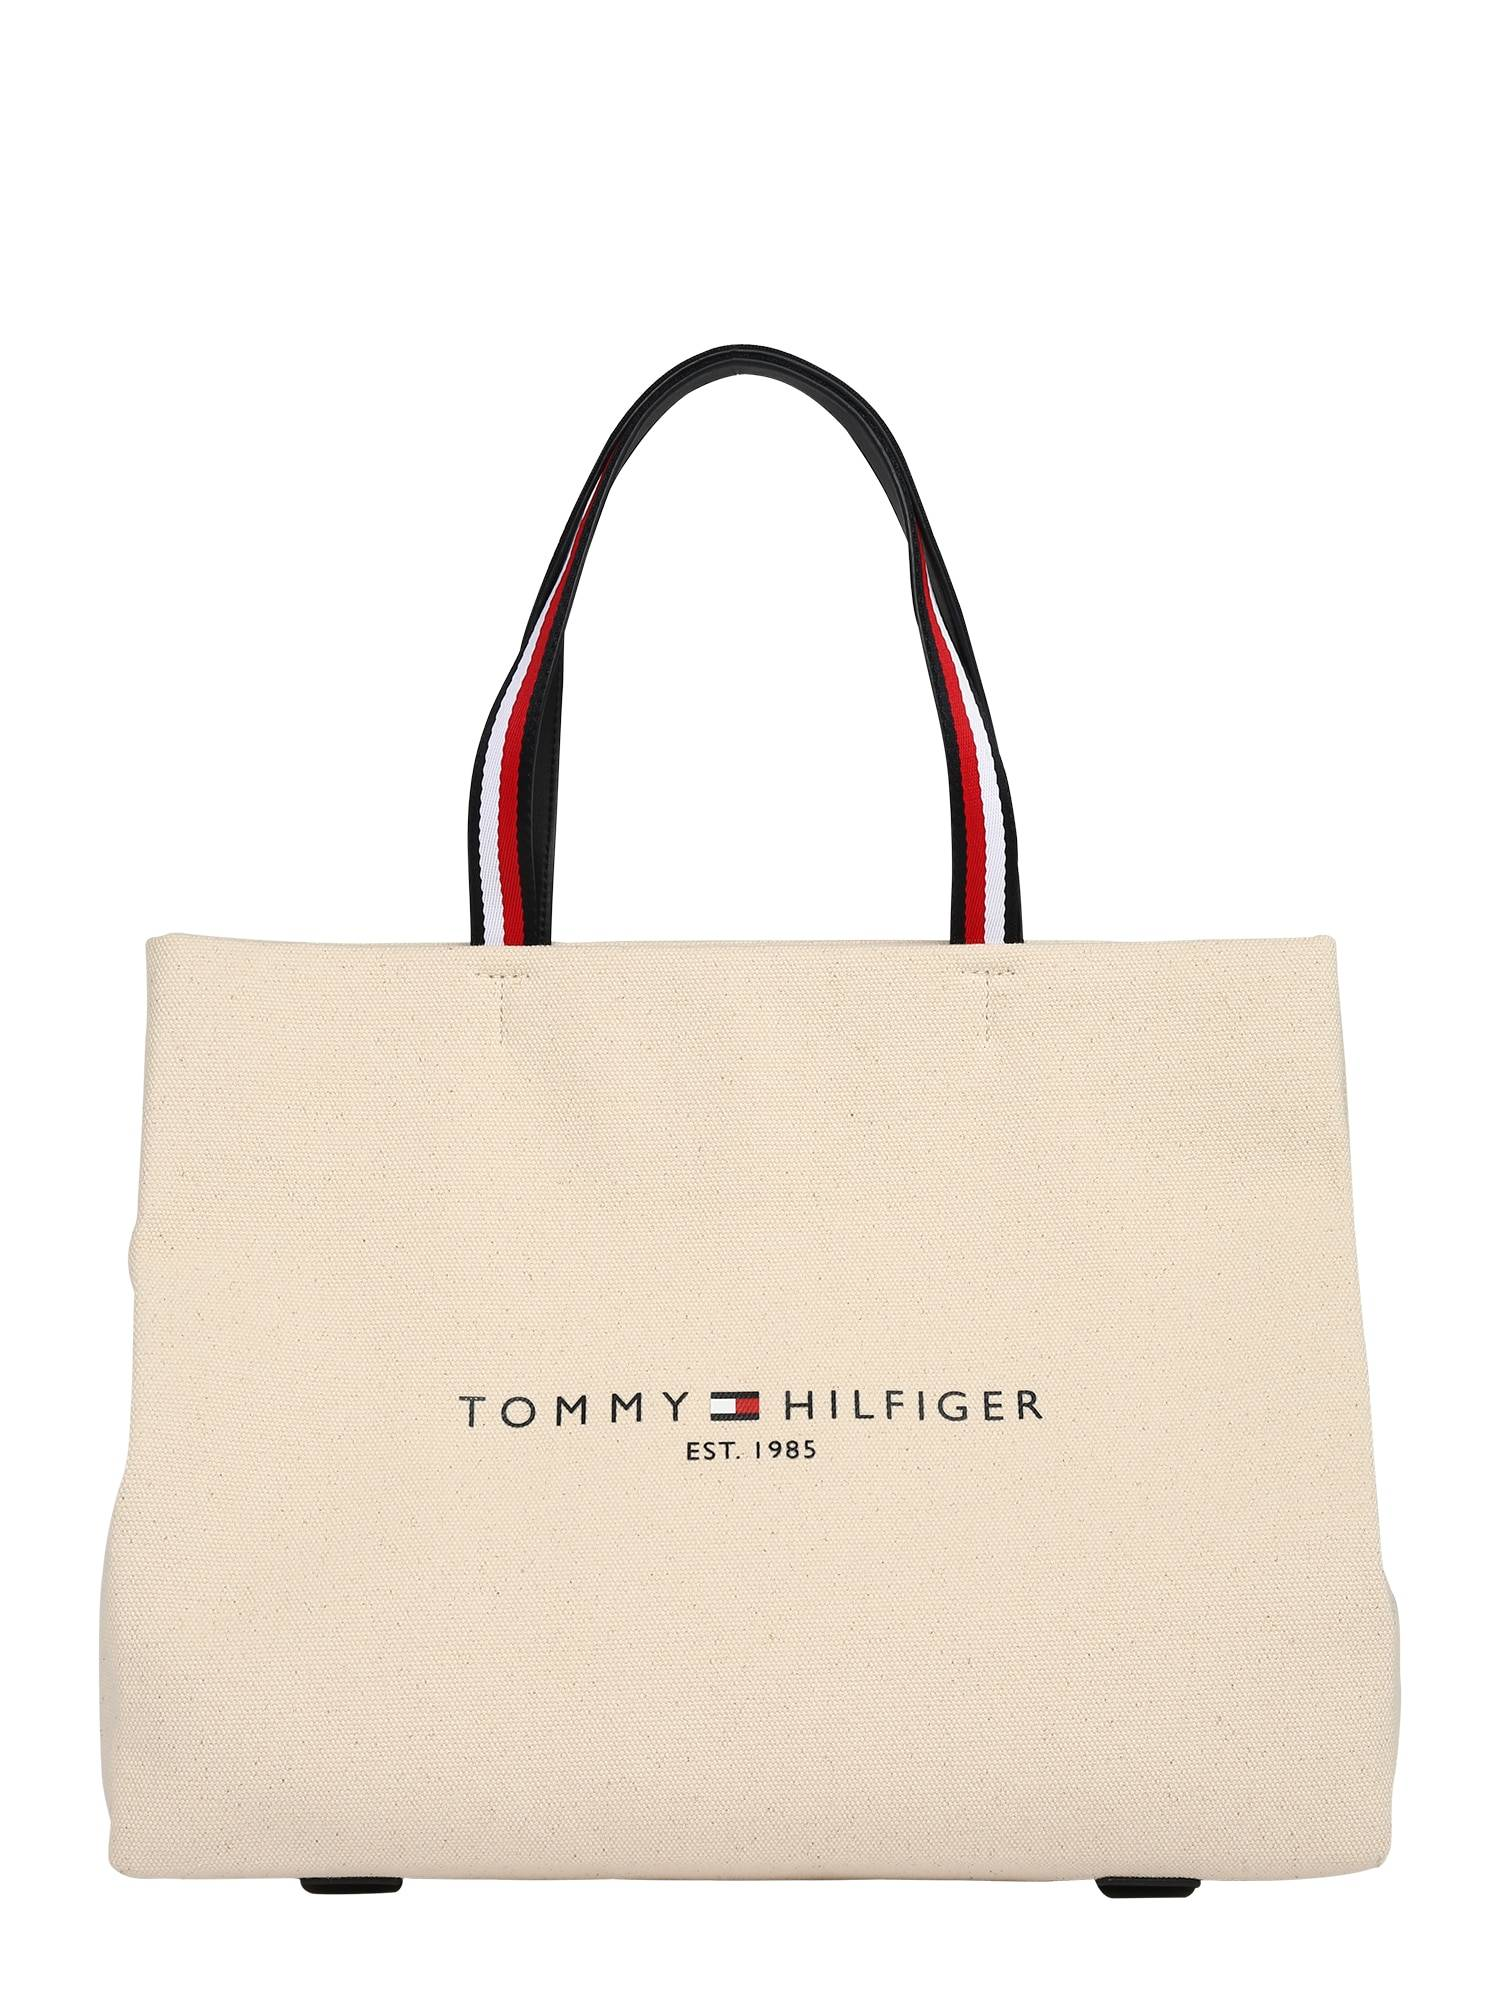 Tommy Hilfiger Cabas  - Beige - Taille: One Size - female